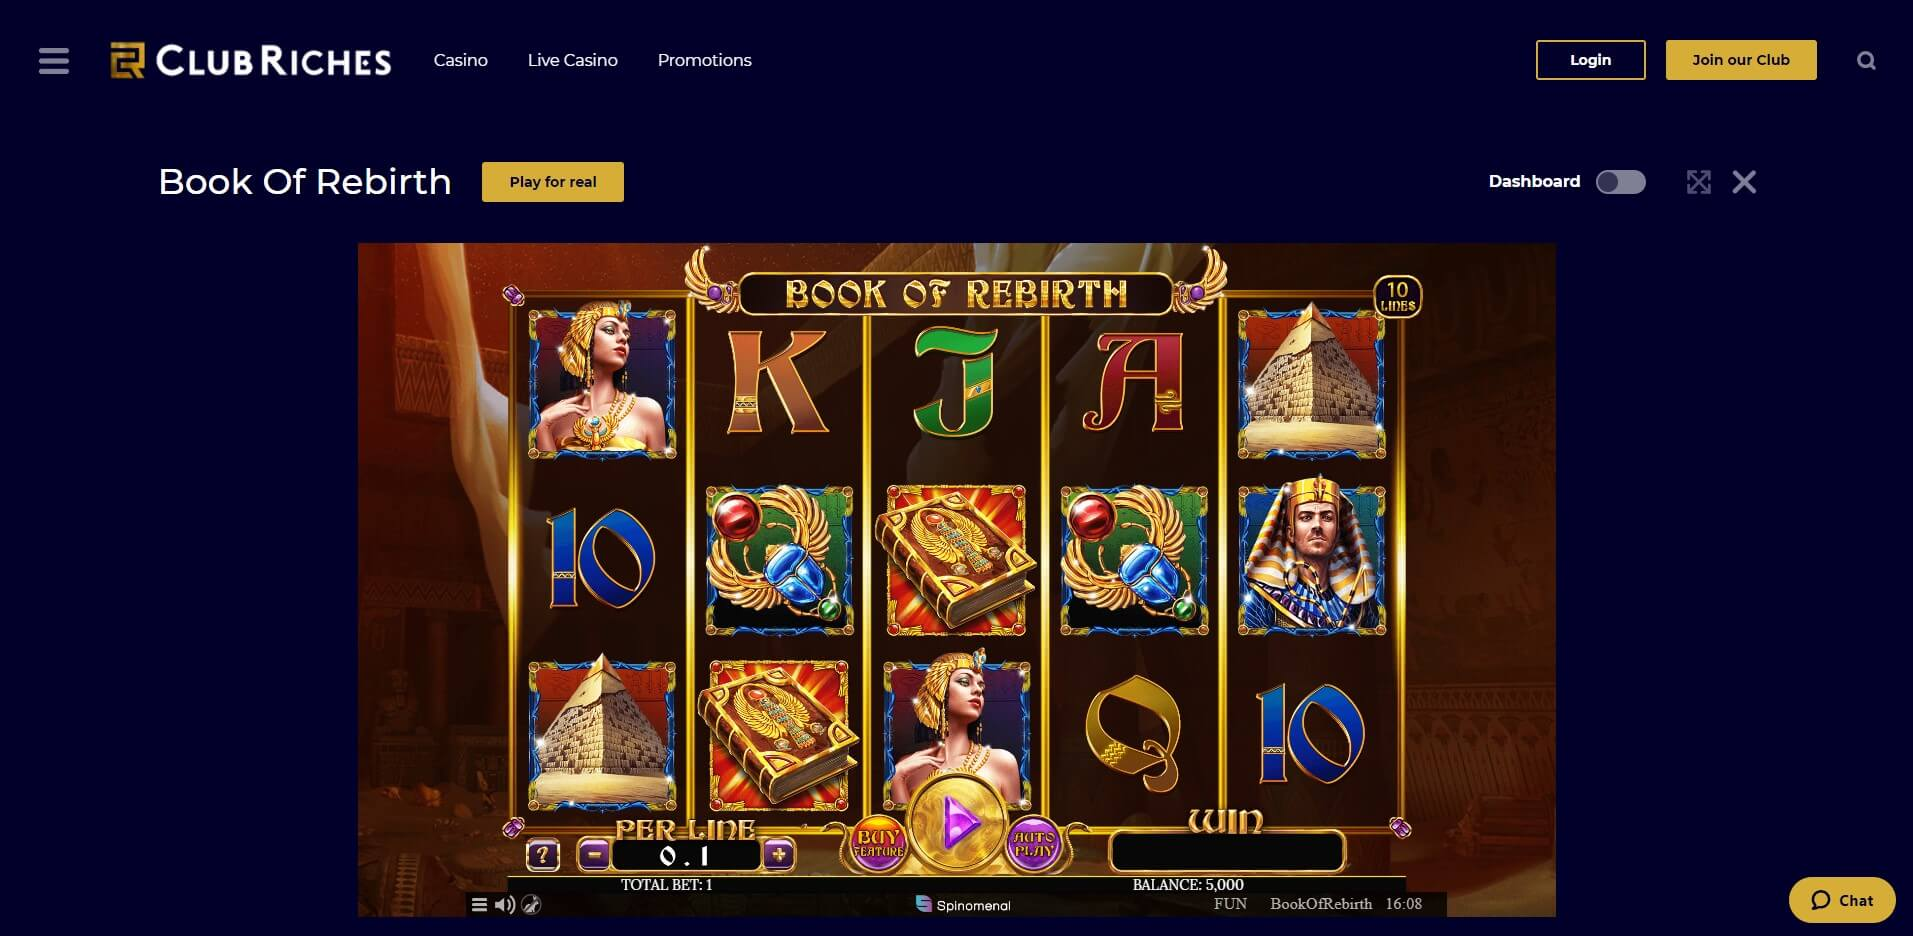 Game Play at ClubRiches Casino